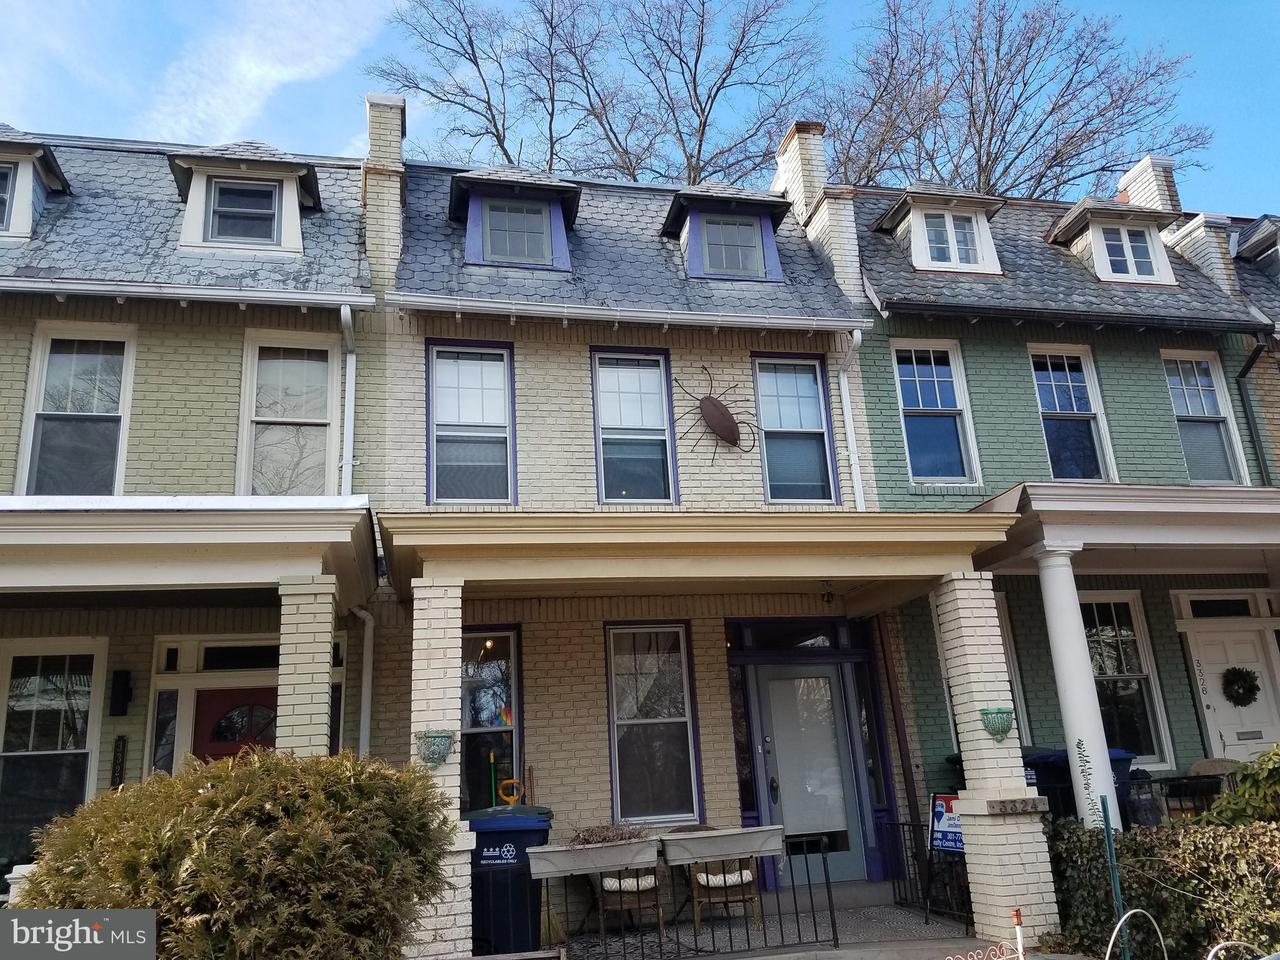 Townhouse for Sale at 3324 19TH ST NW 3324 19TH ST NW Washington, District Of Columbia 20010 United States